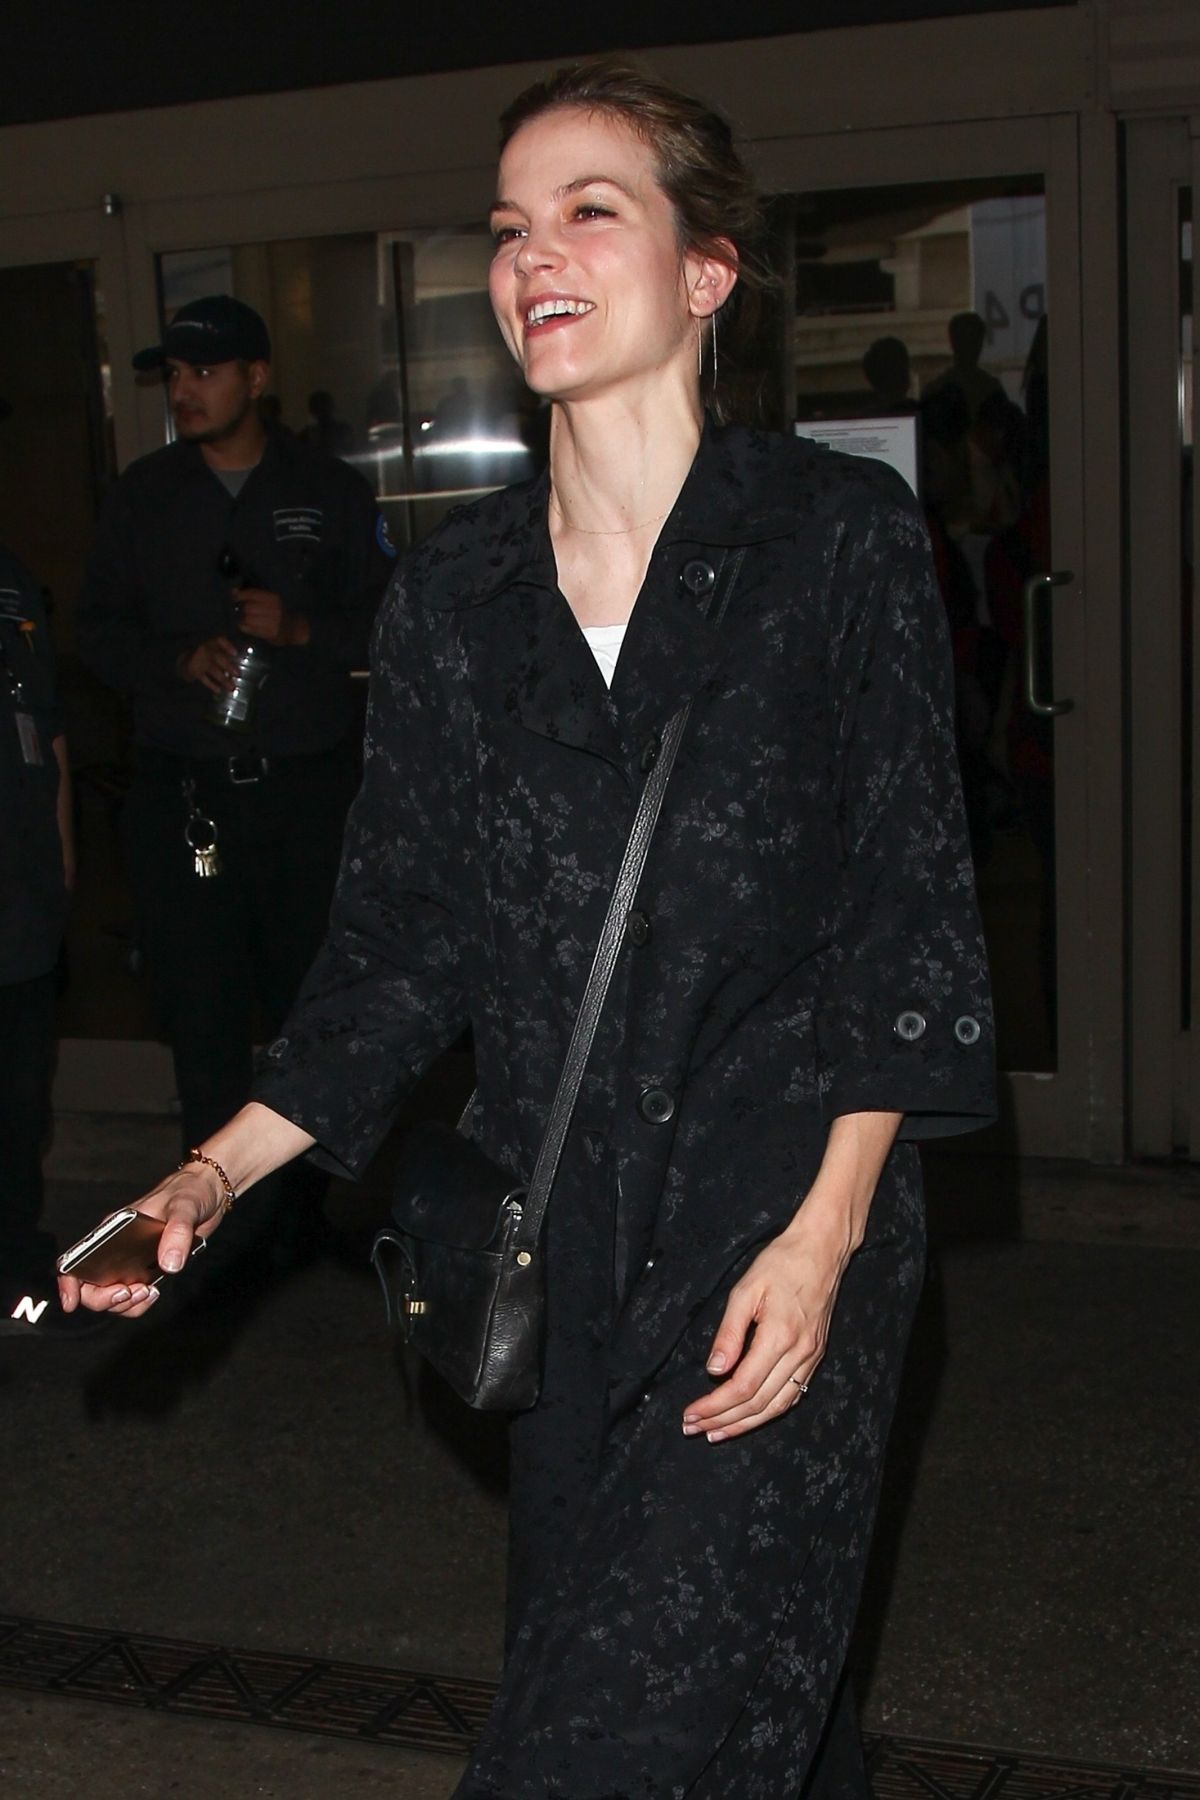 Sylvia Hoeks Greets some fans with a big smile as she arrives at LAX International Airport in Los Angeles